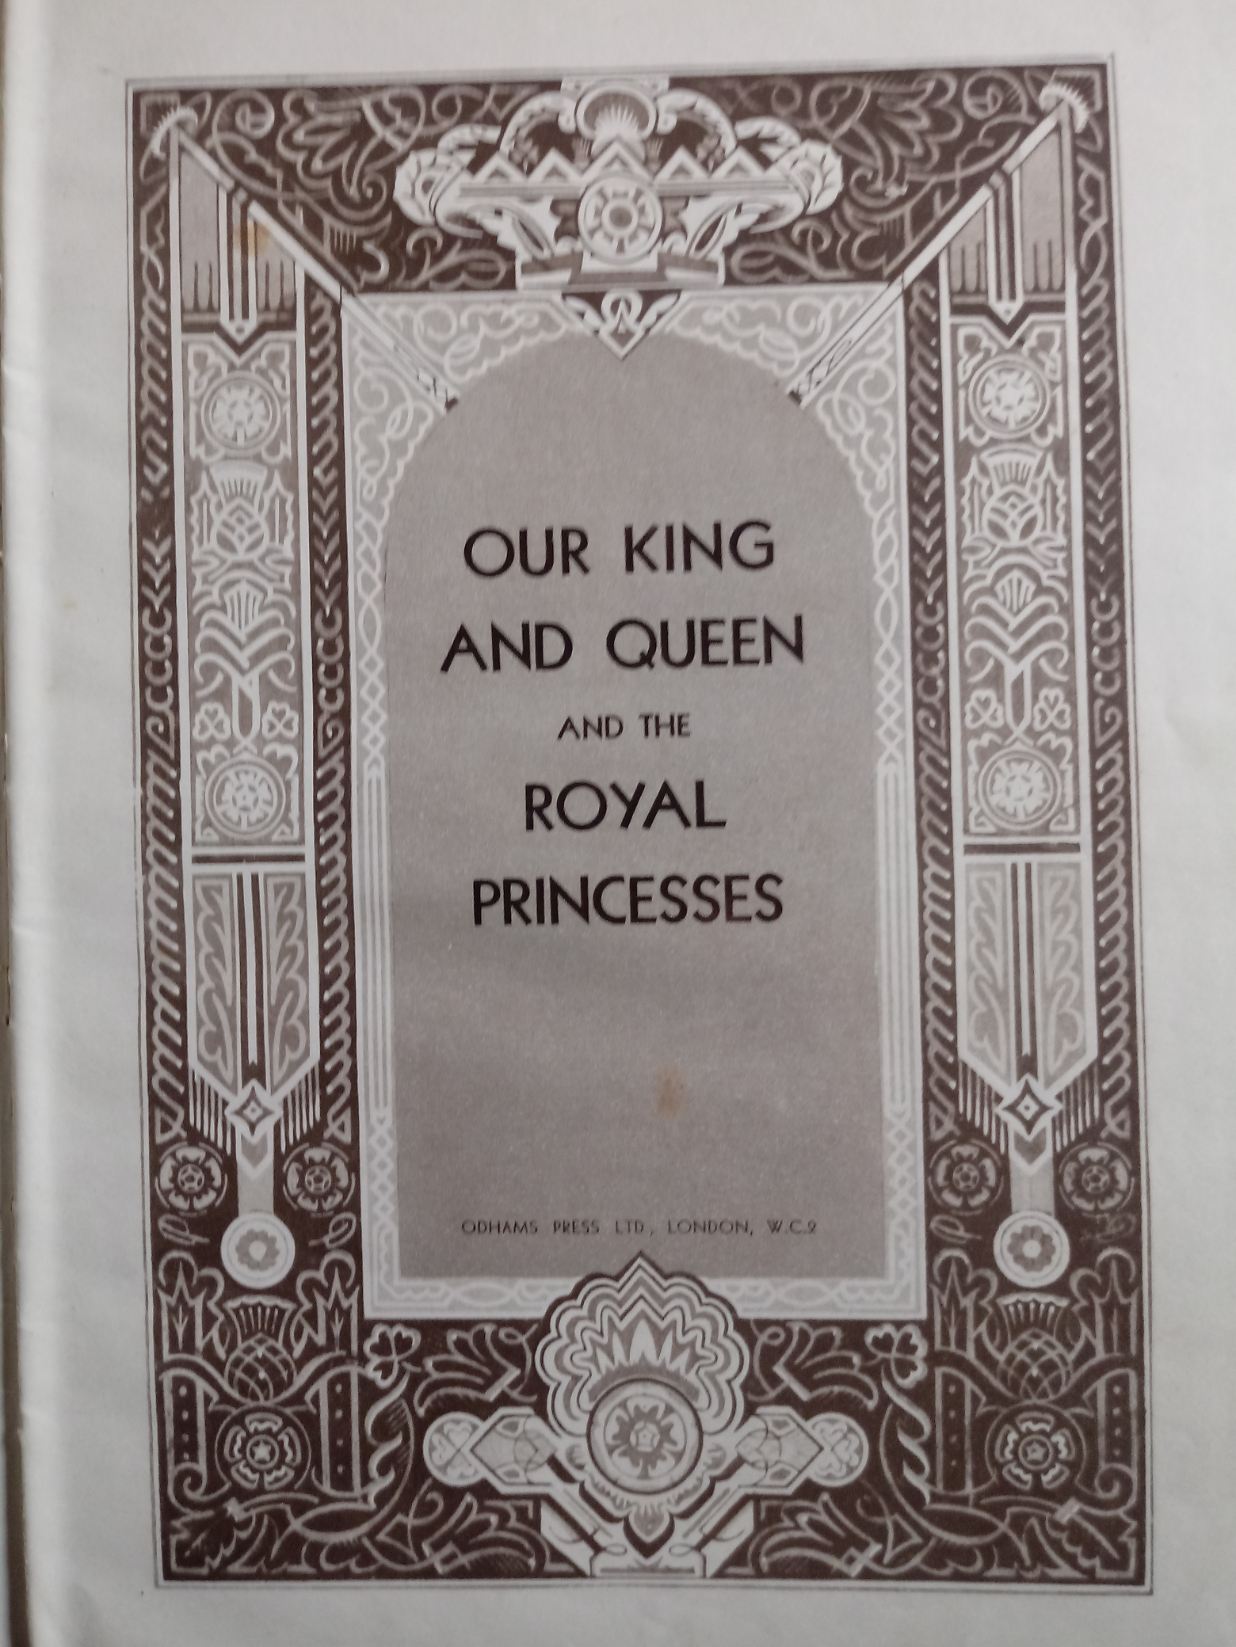 2 x hardback books published Odhams Press 1- The Coronation Of King George VI And Queen Elizabeth - Image 7 of 7